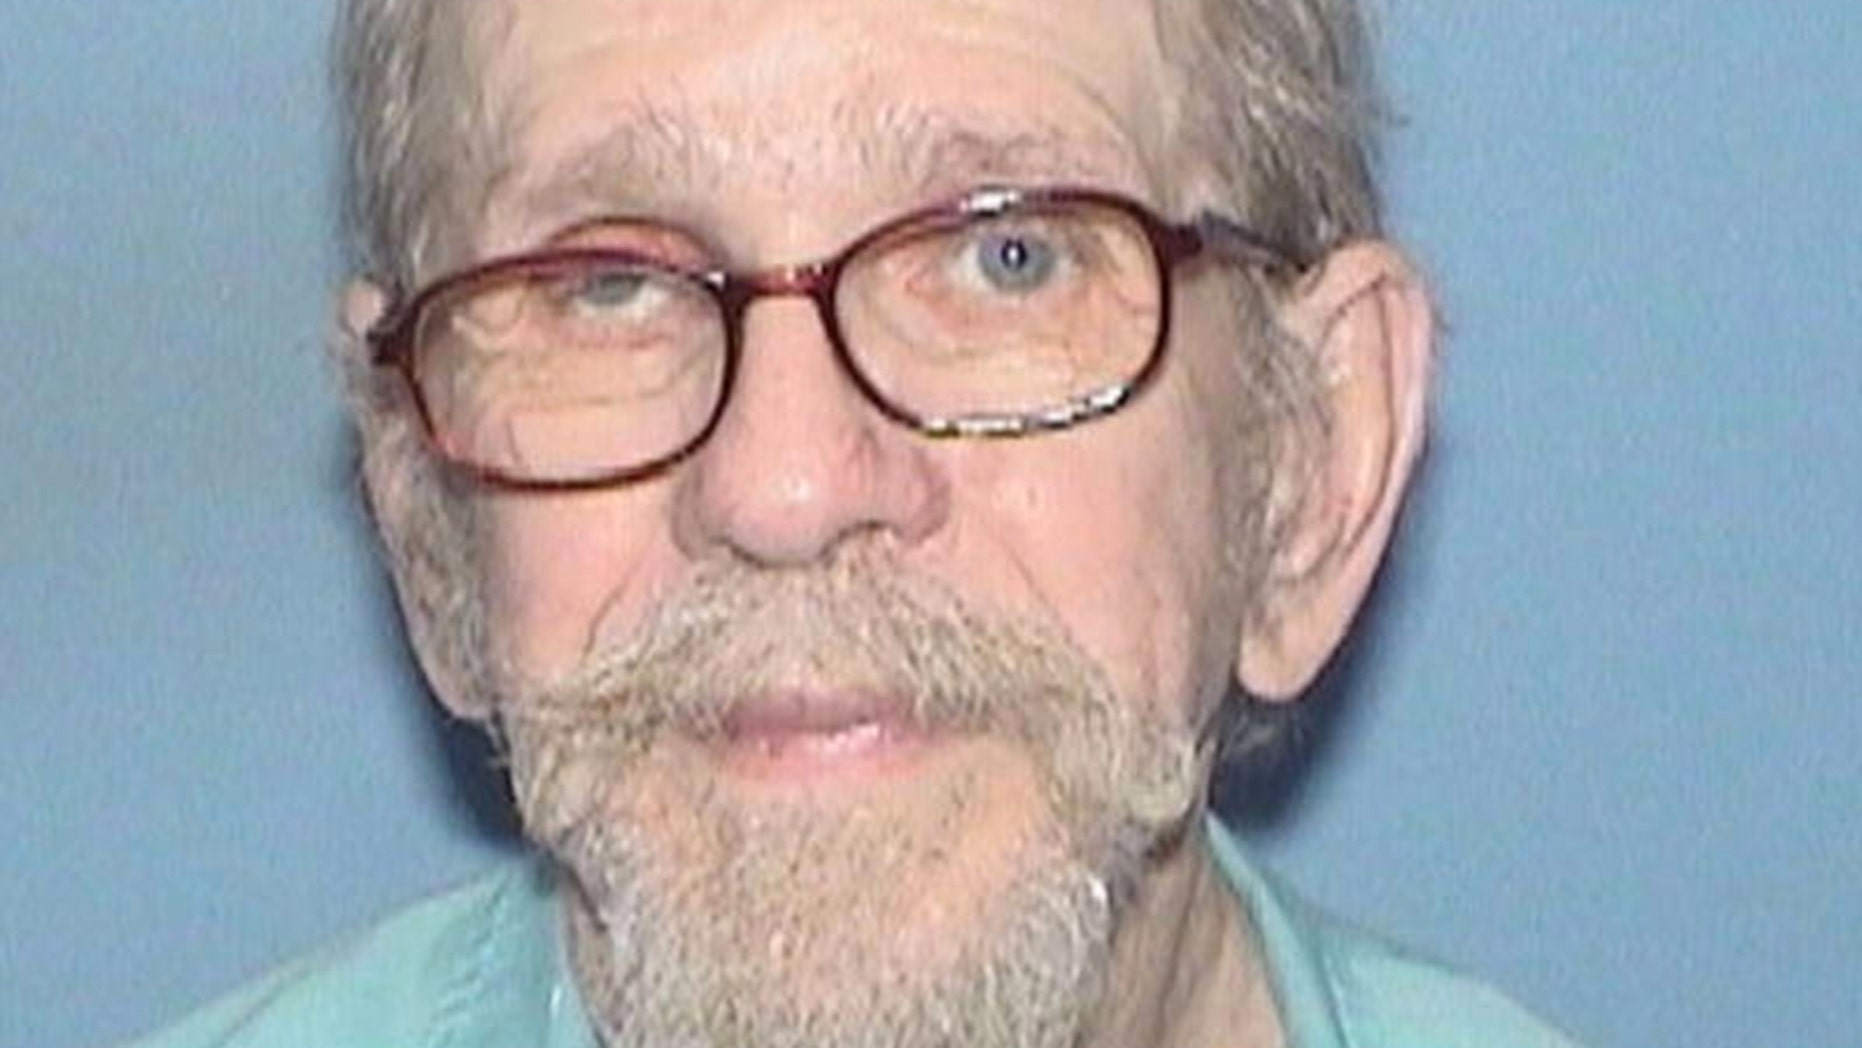 Carl Reimann, 77, was paroled late last month after spending more than 45 years behind bars for killing five people in 1972.